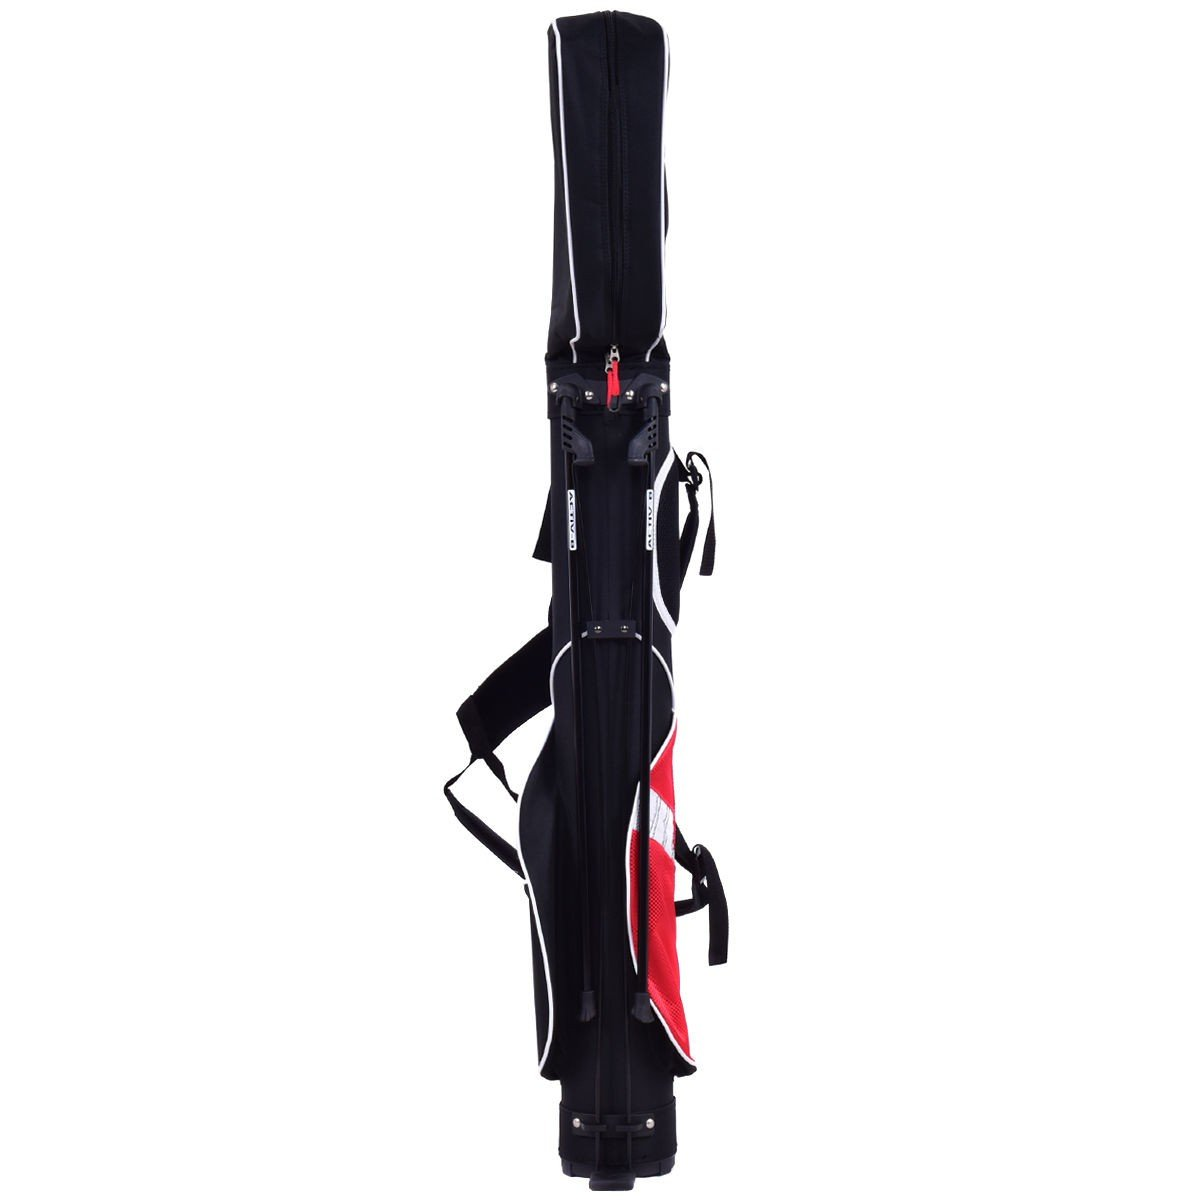 5'' Sunday Golf Bag Stand 7 Clubs Carry Pockets - By Choice Products by By Choice Products (Image #3)